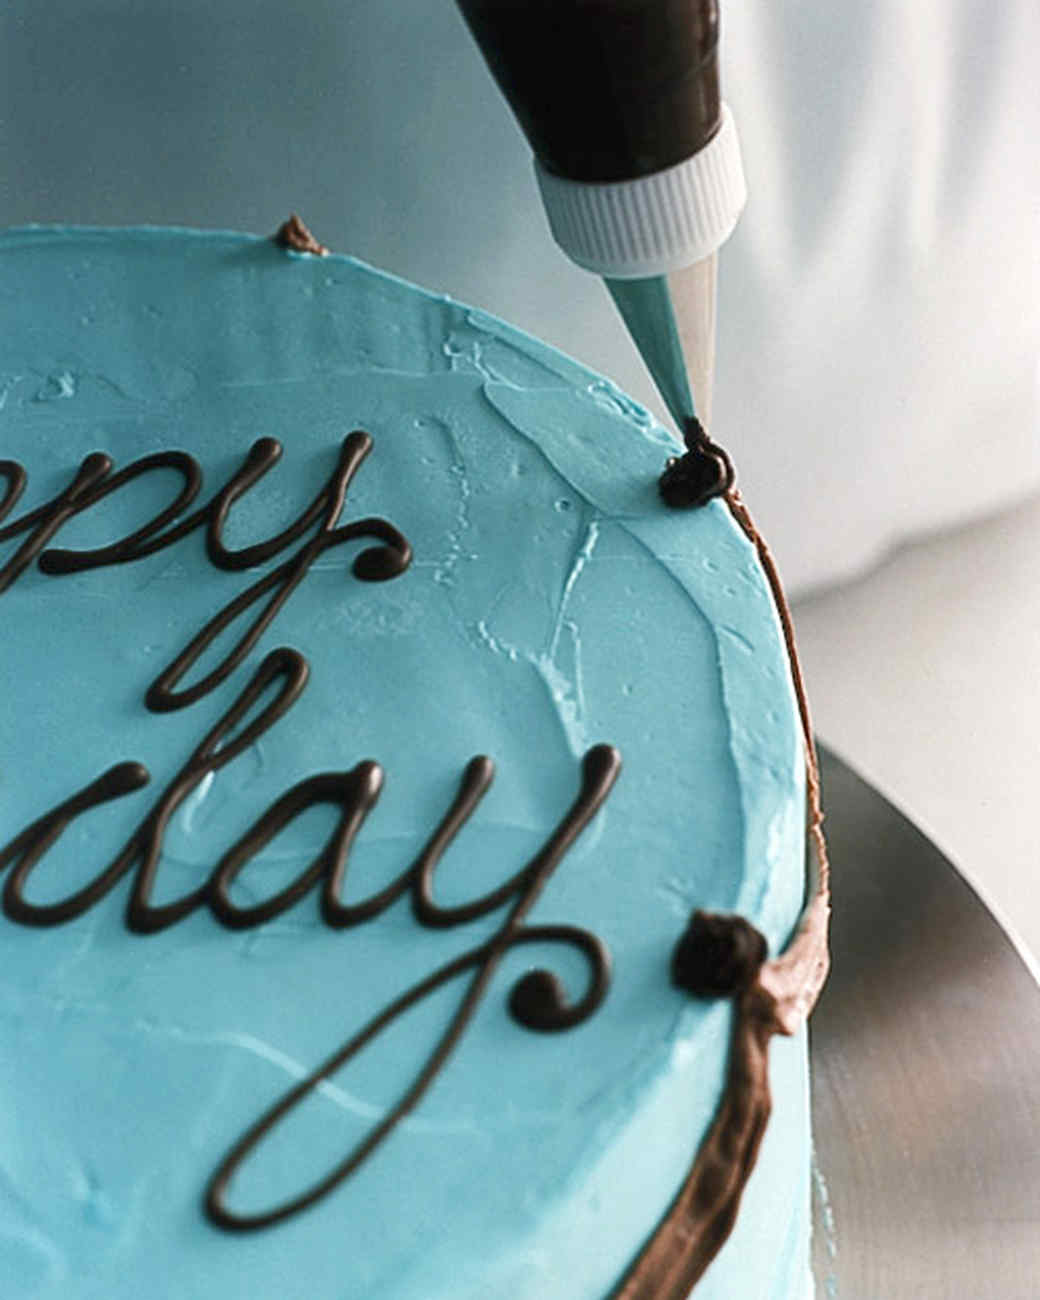 expository essay on how to bake a cake Type: expository essay how to make a simple birthday cake have you ever wanted to bake a birthday cake for a loved one well, here is an explanation of how to make a simple birthday cake with only a few required ingredients.